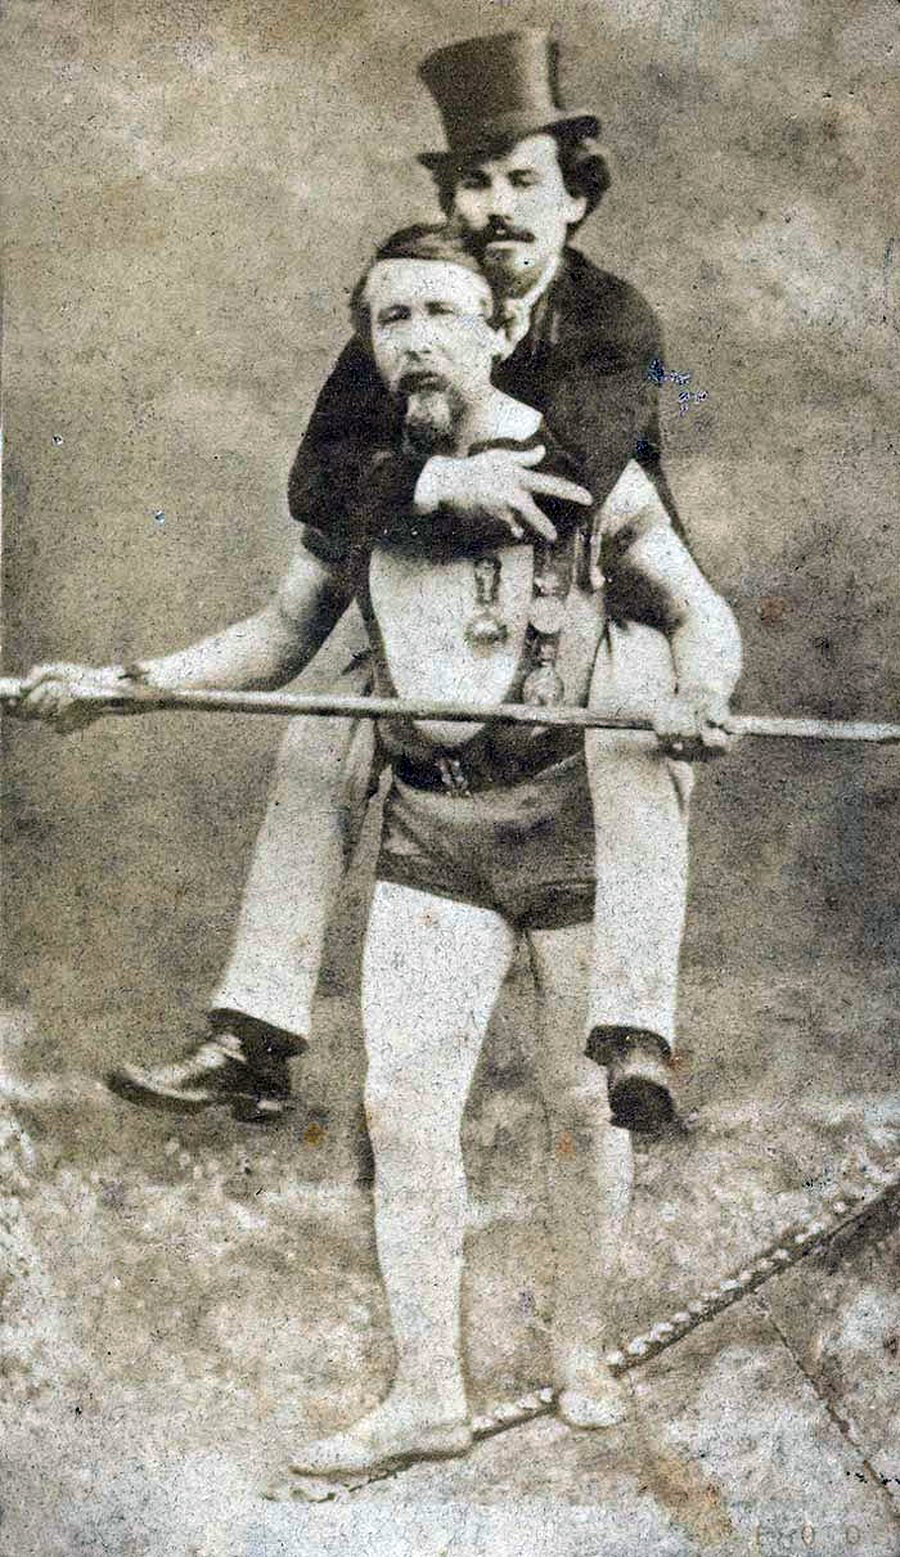 Blondin carrying his manager, Harry Colcord, on a tightrope Charles.Blondin.jpg